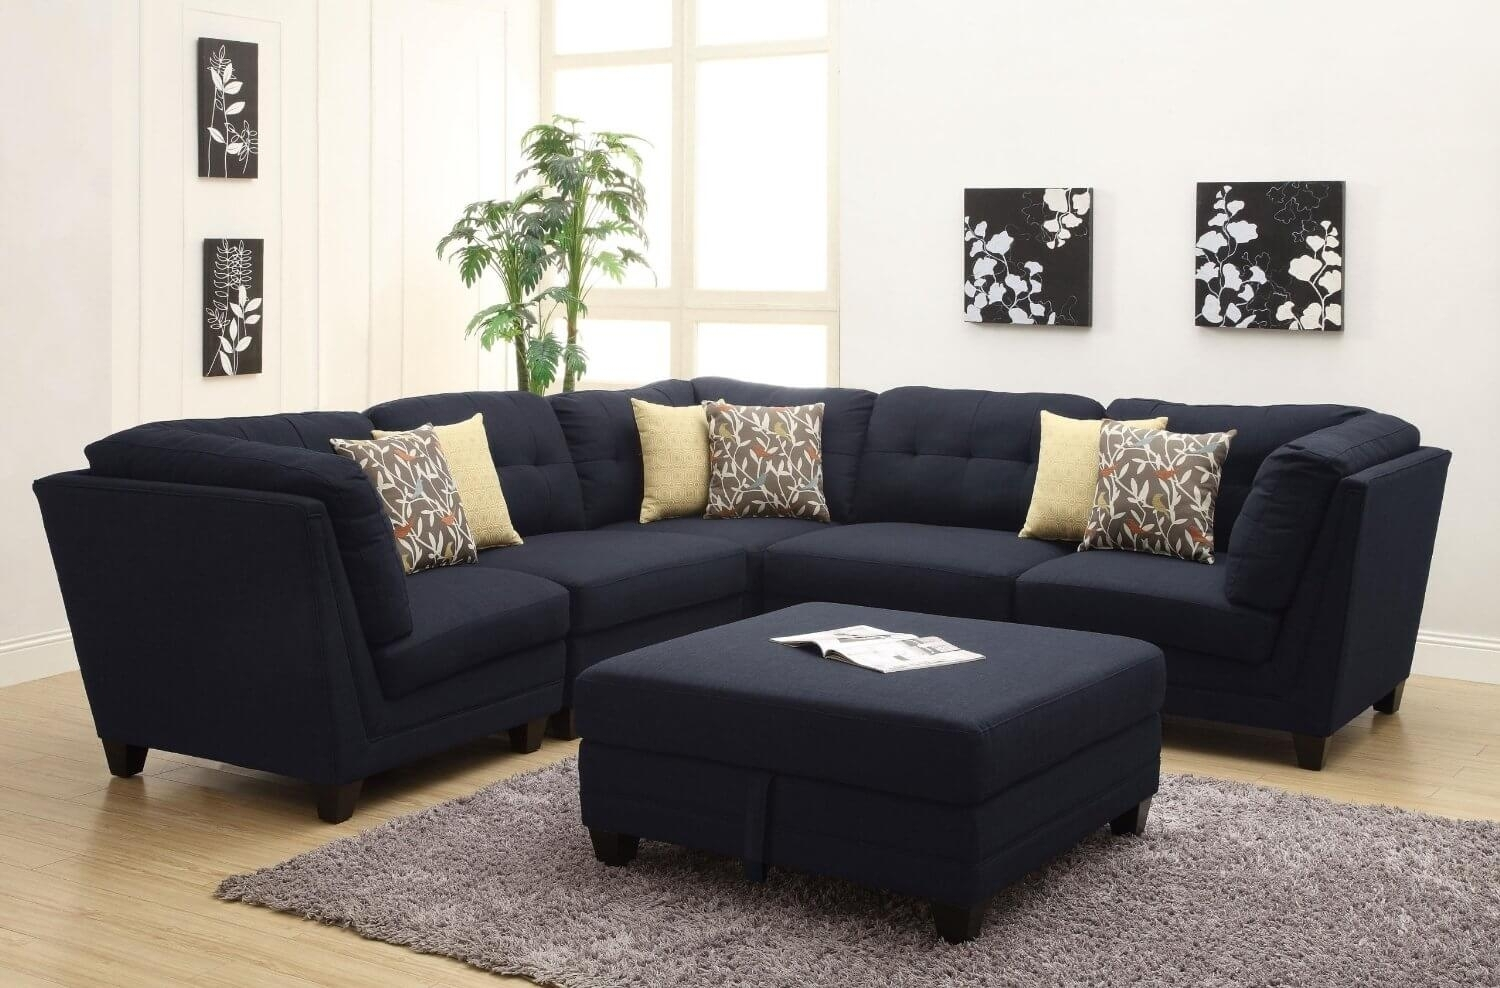 sectional sofa under 2000 bed for toddlers philippines 10 top sofas 1500 ideas dollars inside image 7 of